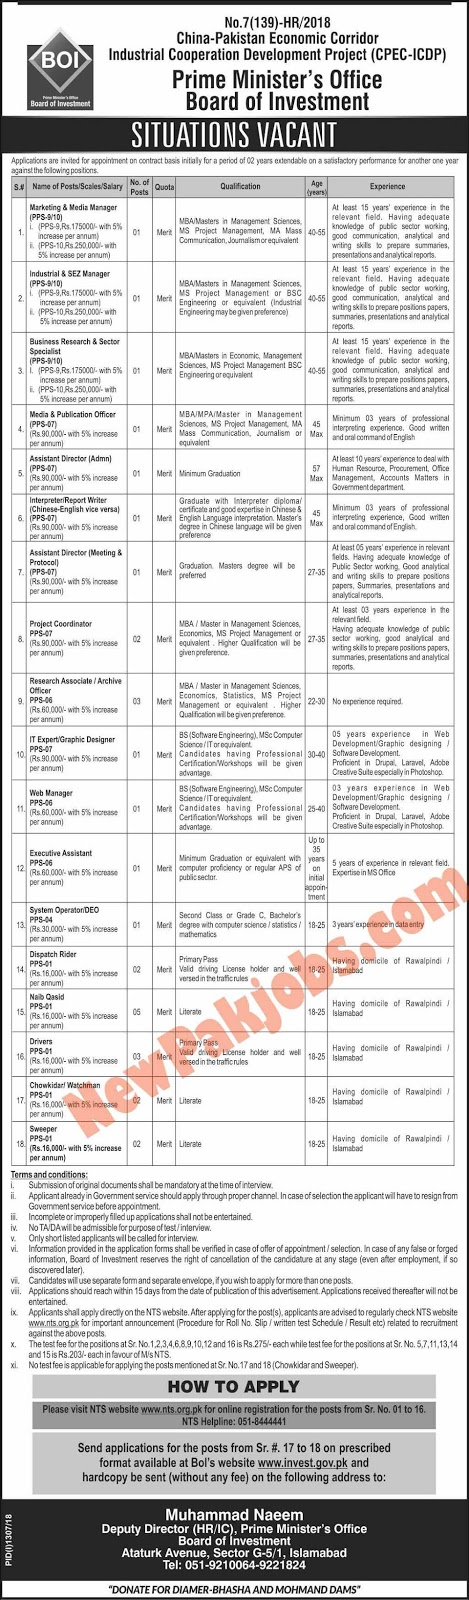 NTS Jobs in CPEC China Pakistan Economic Corridor September 2018 BOI Board of Investment